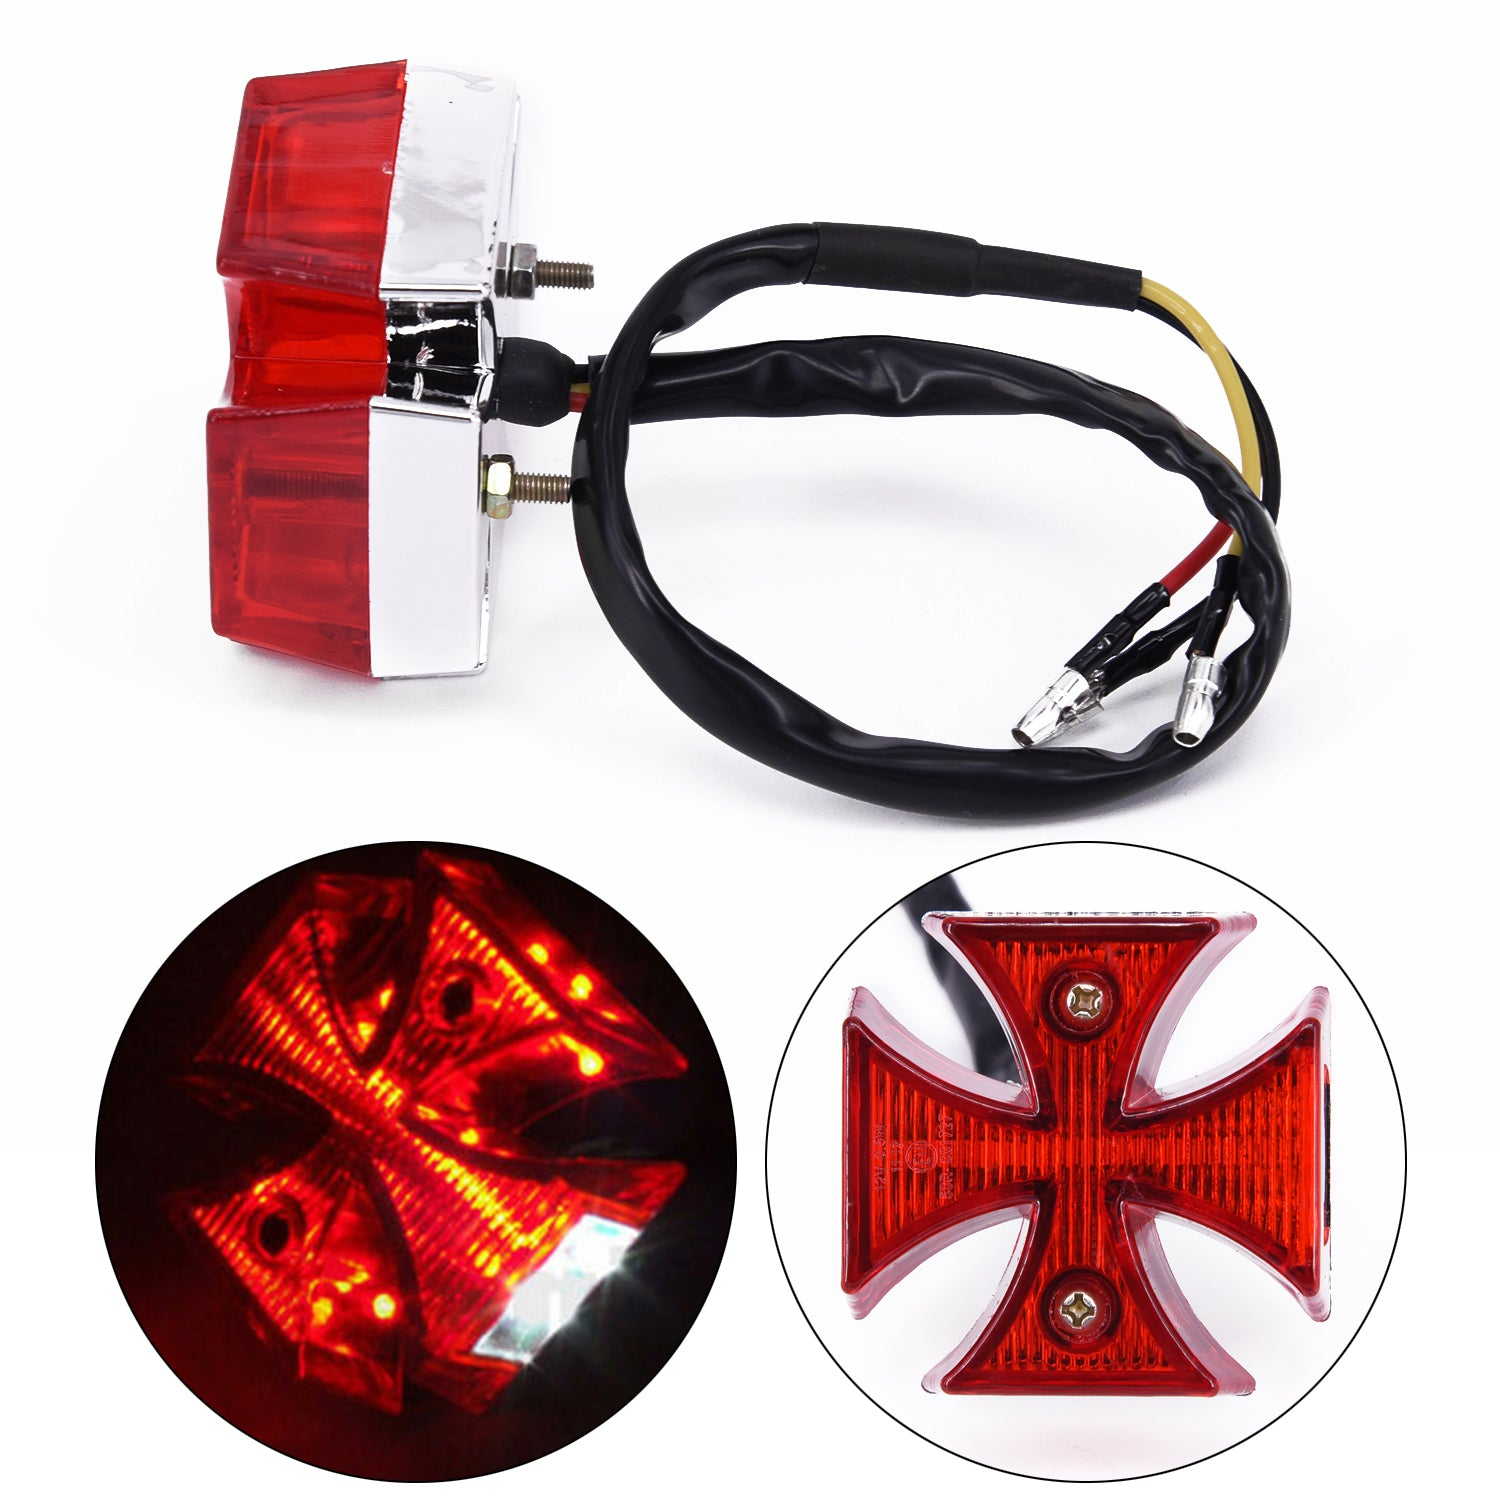 Automobiles & Motorcycles Dc 12v Universal Led Motorcycle Quads Maltese Cross Tail Brake Lamps Rear Lights Accessories